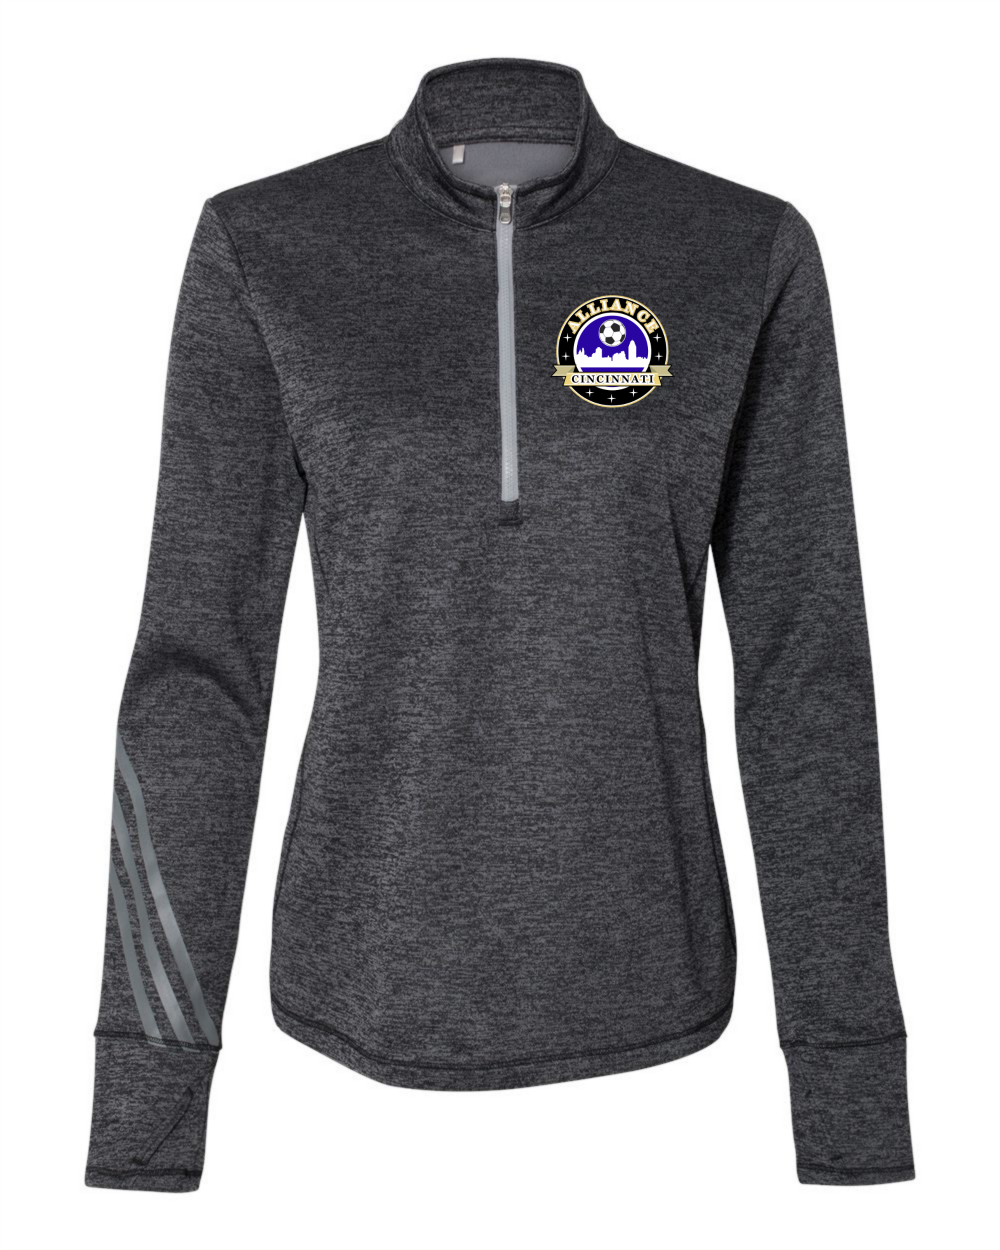 Adidas - Women's Brushed Terry Heathered Quarter-Zip Pullover